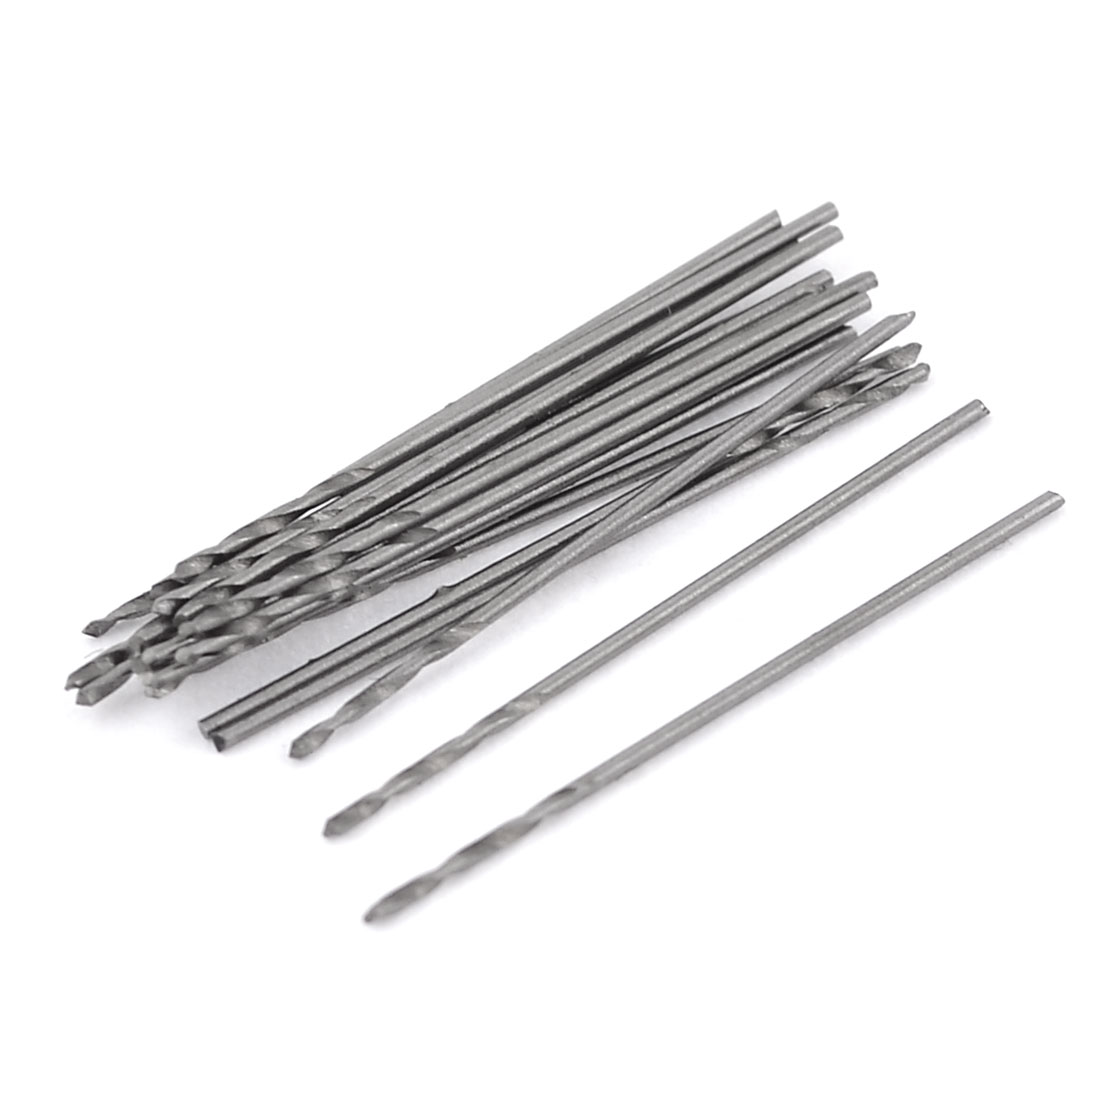 20 Pcs High Speed Steel 0.6mm Cutting Dia Twist Drilling Bit for Electric Drill